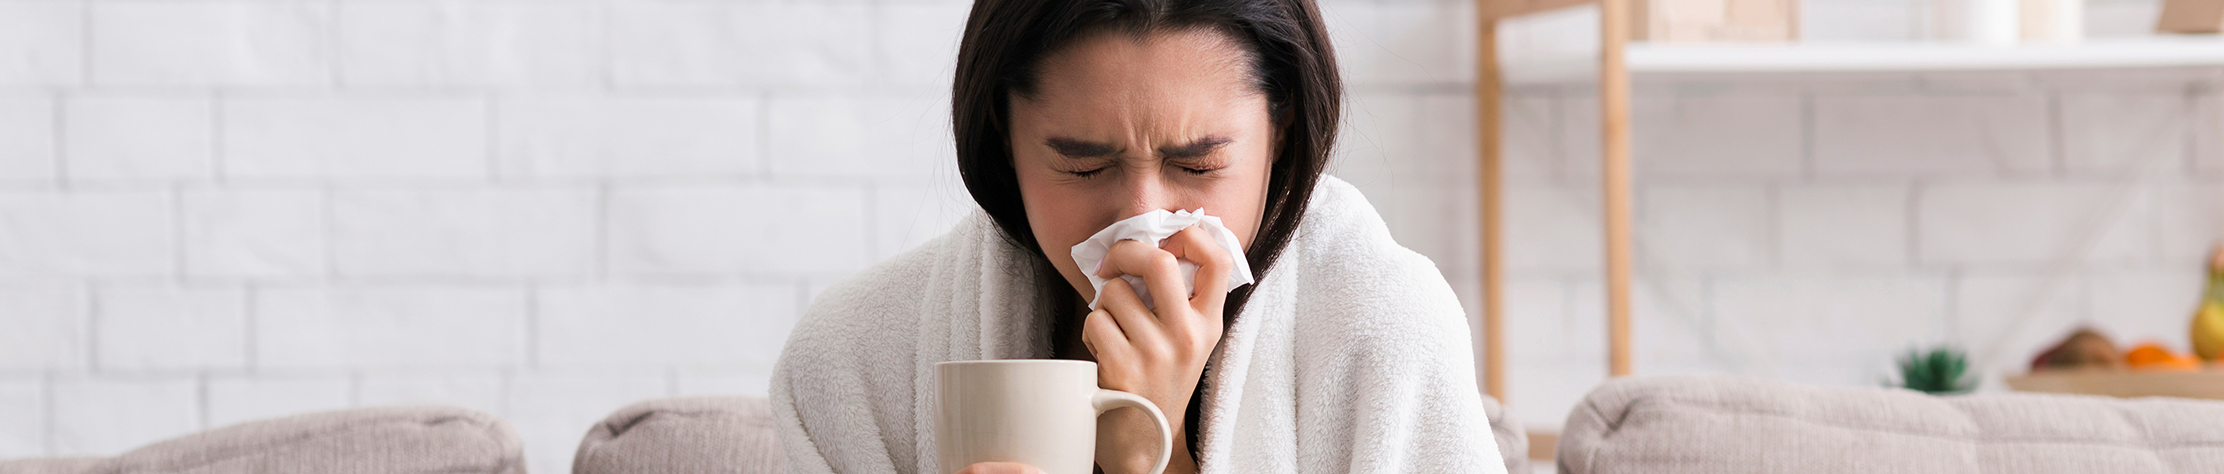 a woman who is sick sitting on her couch with a blanket around her shoulders holding a ceramic mug and sneezing into a tissue.